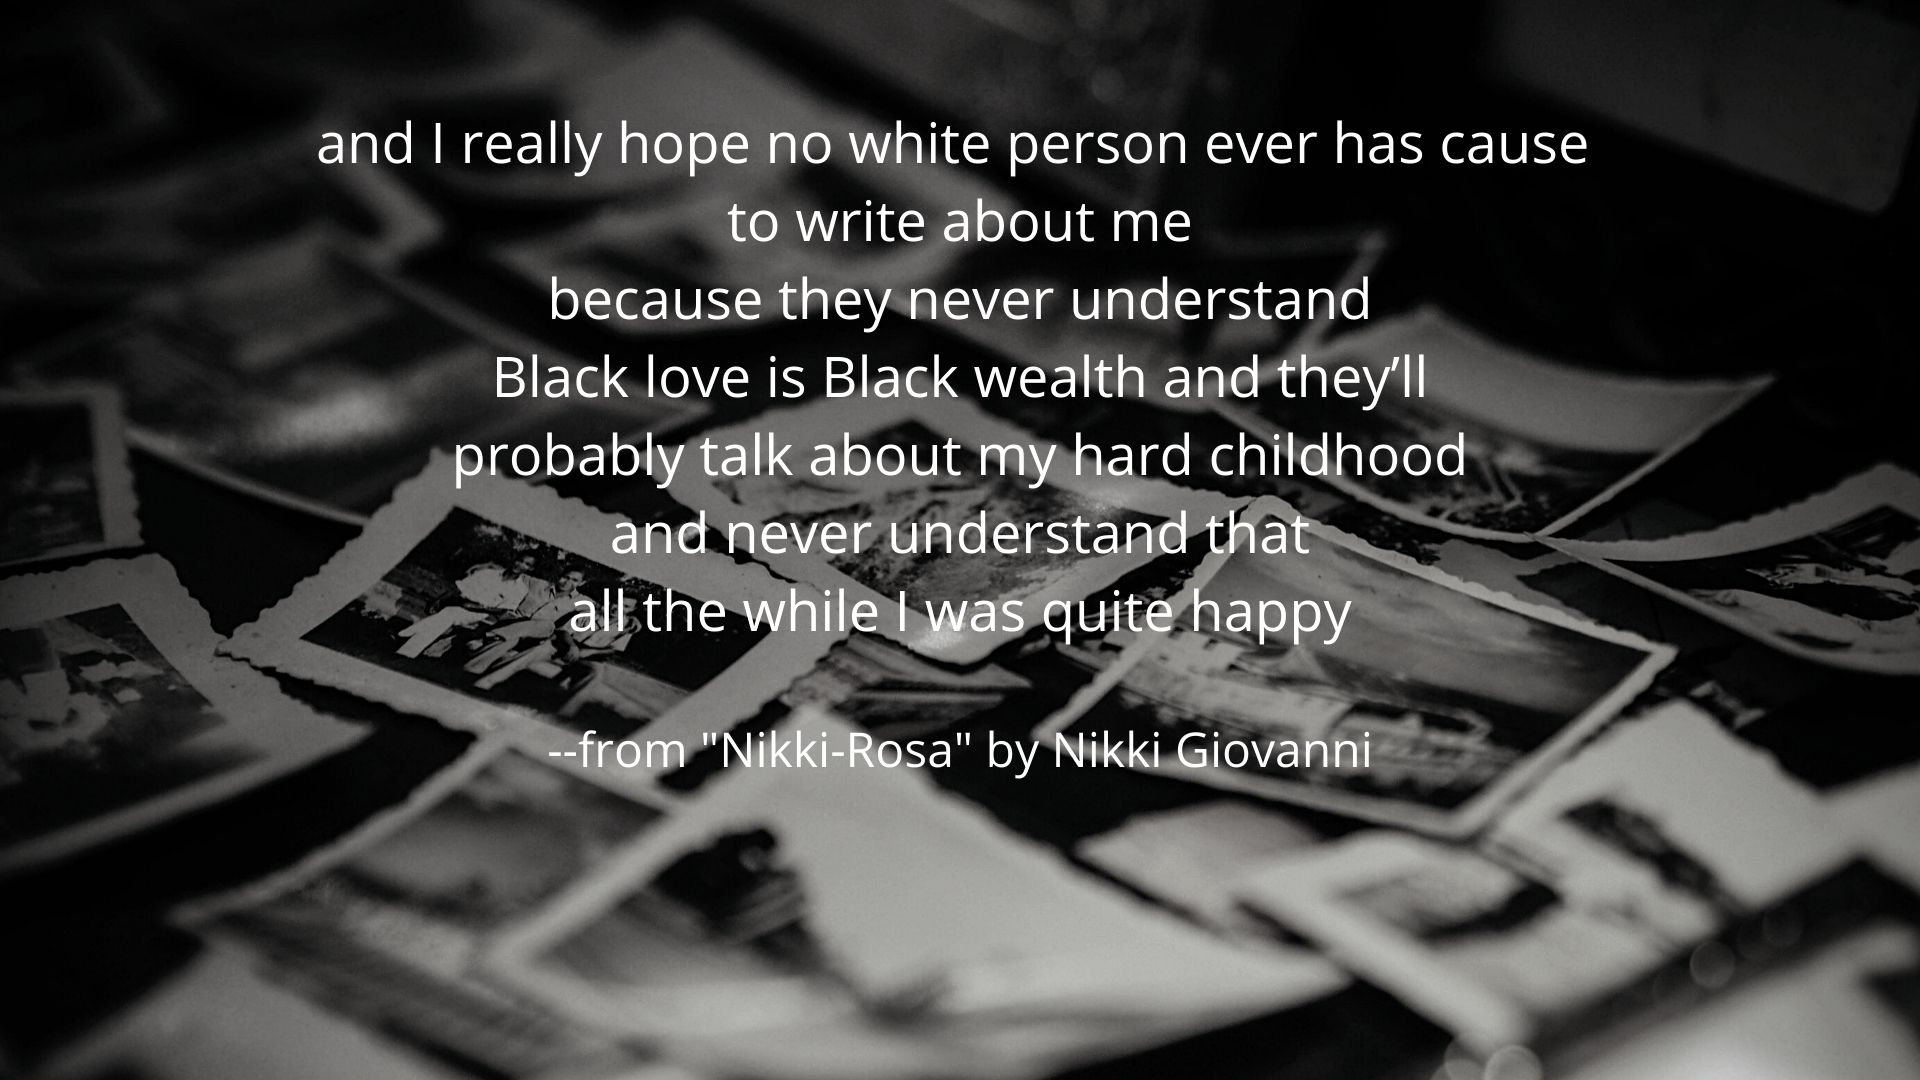 and I really hope no white person ever has cause  to write about me because they never understand Black love is Black wealth and they'll probably talk about my hard childhood and never understand that all the while I was quite happy  --from